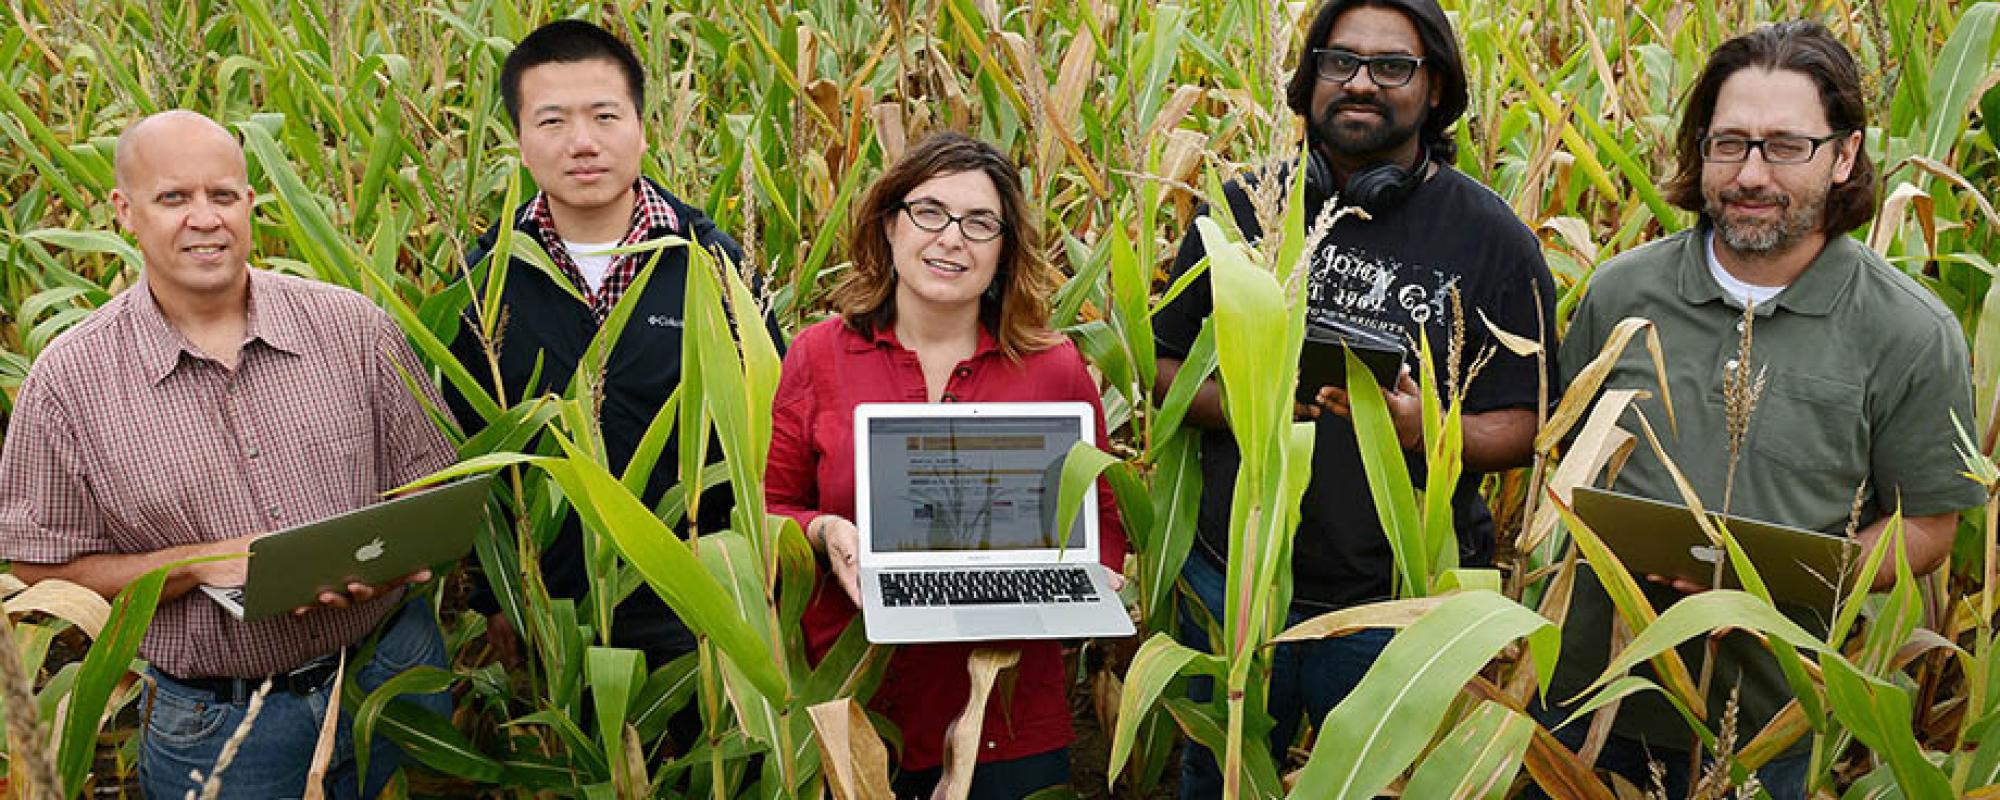 five people in a corn field with computers